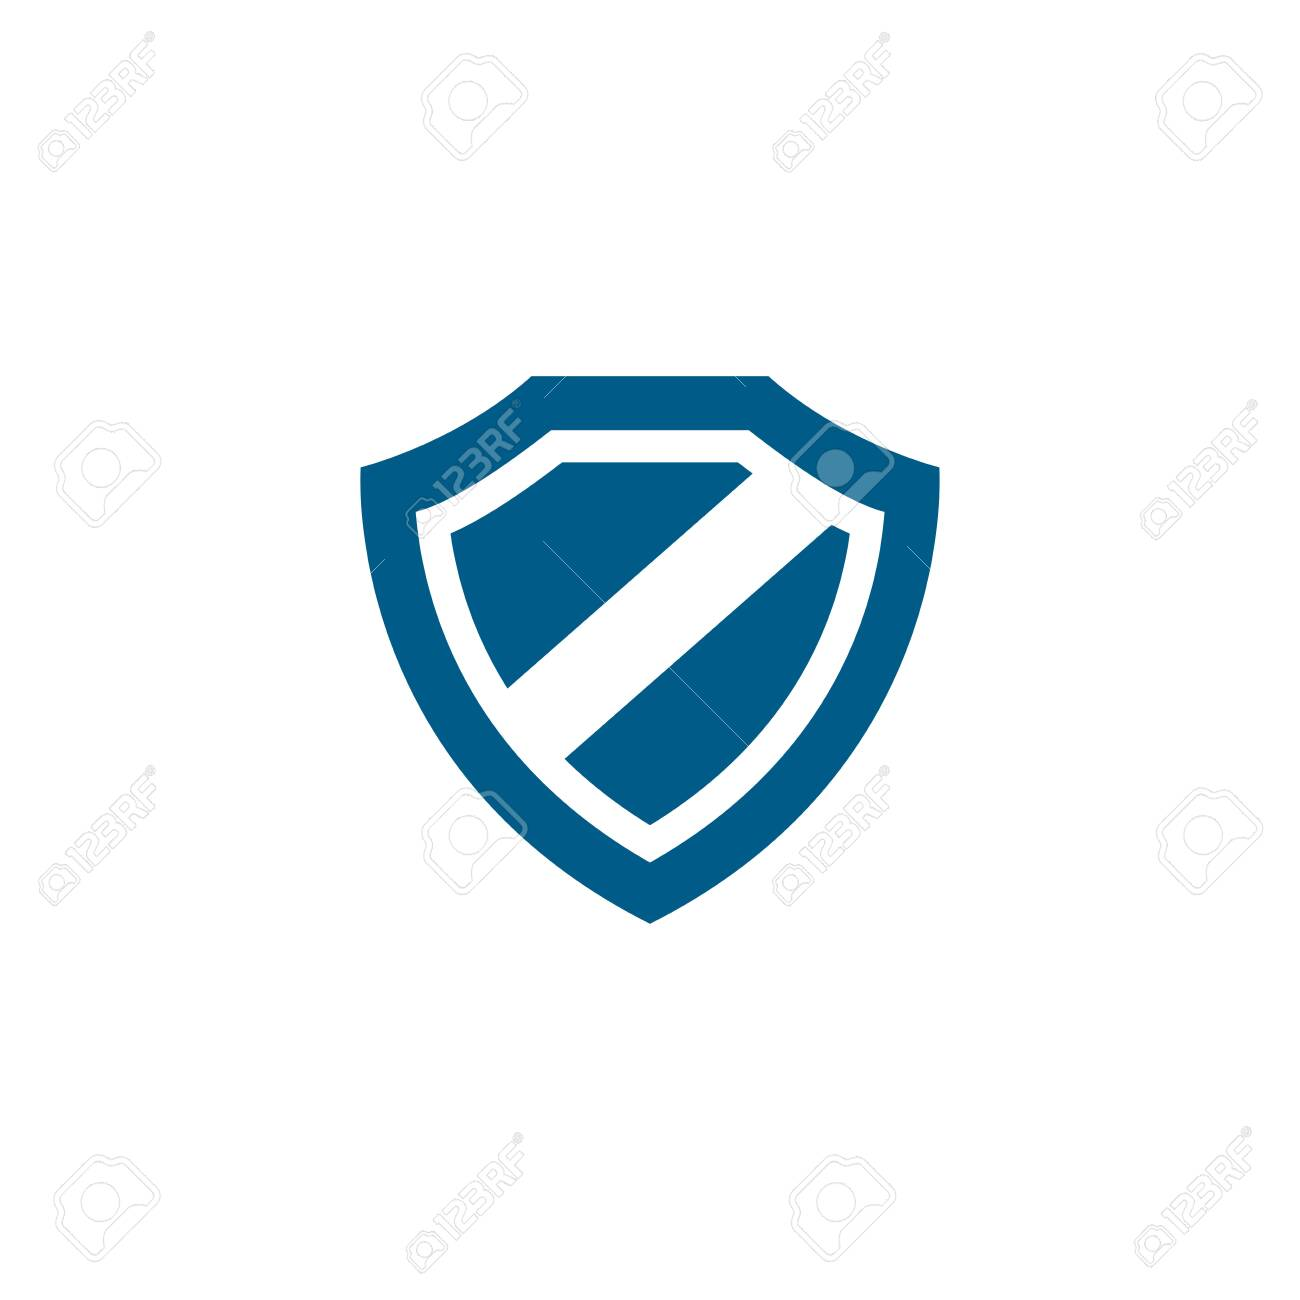 Shield Blue Icon On White Background. Blue Flat Style Vector Illustration. - 154315812